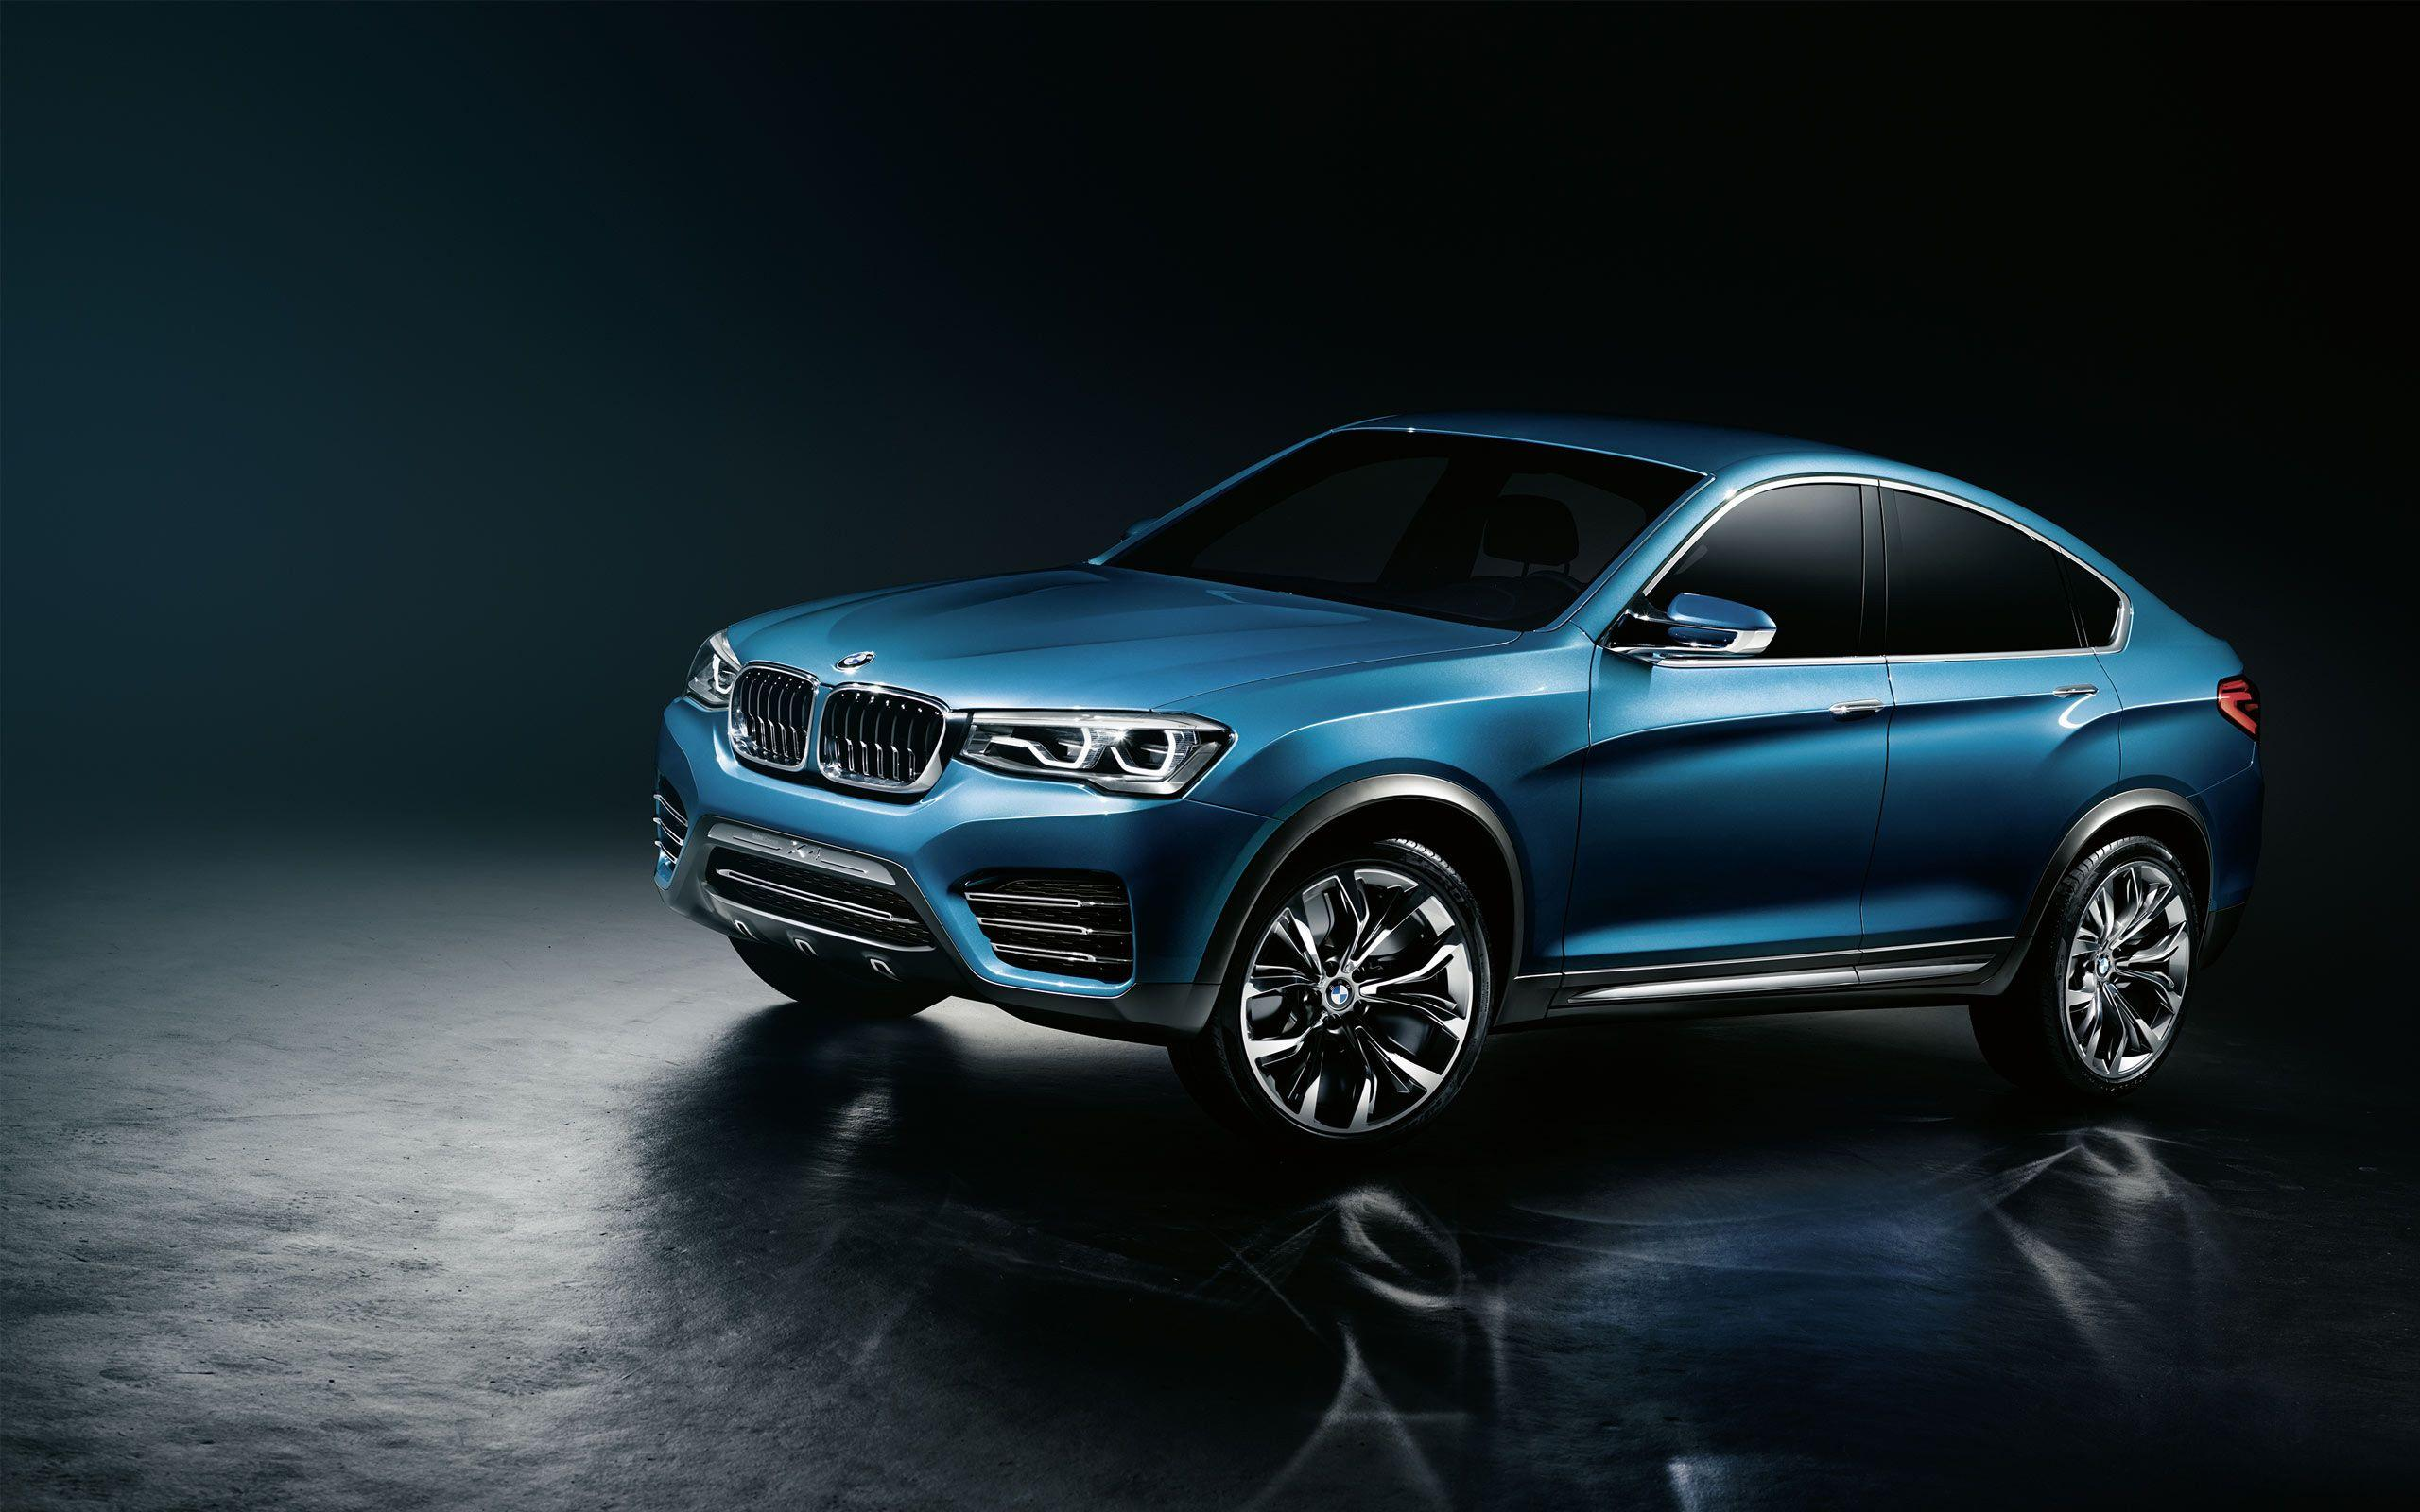 Bmw X4 Wallpapers Wallpaper Cave